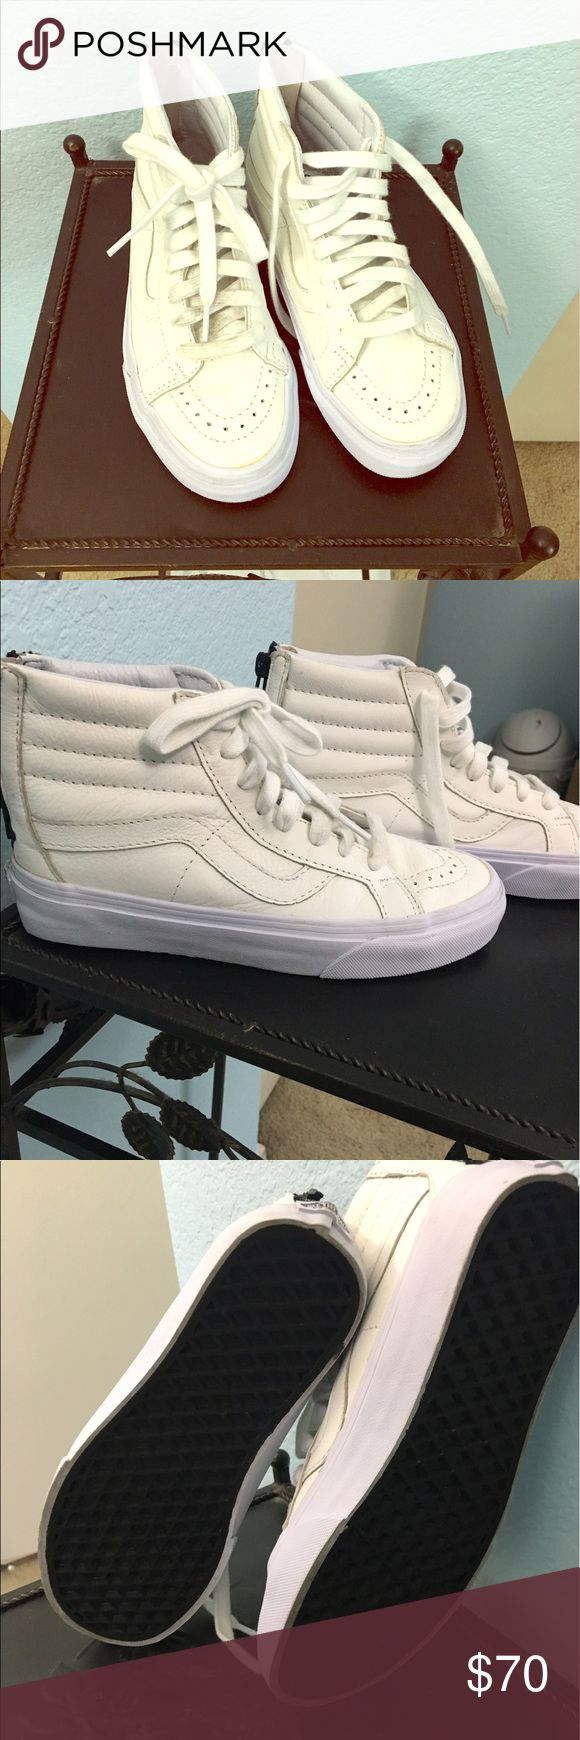 White Leather Vans High tops, white leather, with zipper in the back.  Super comfy shoes, only worn 3 times. Excellent condition Vans Shoes